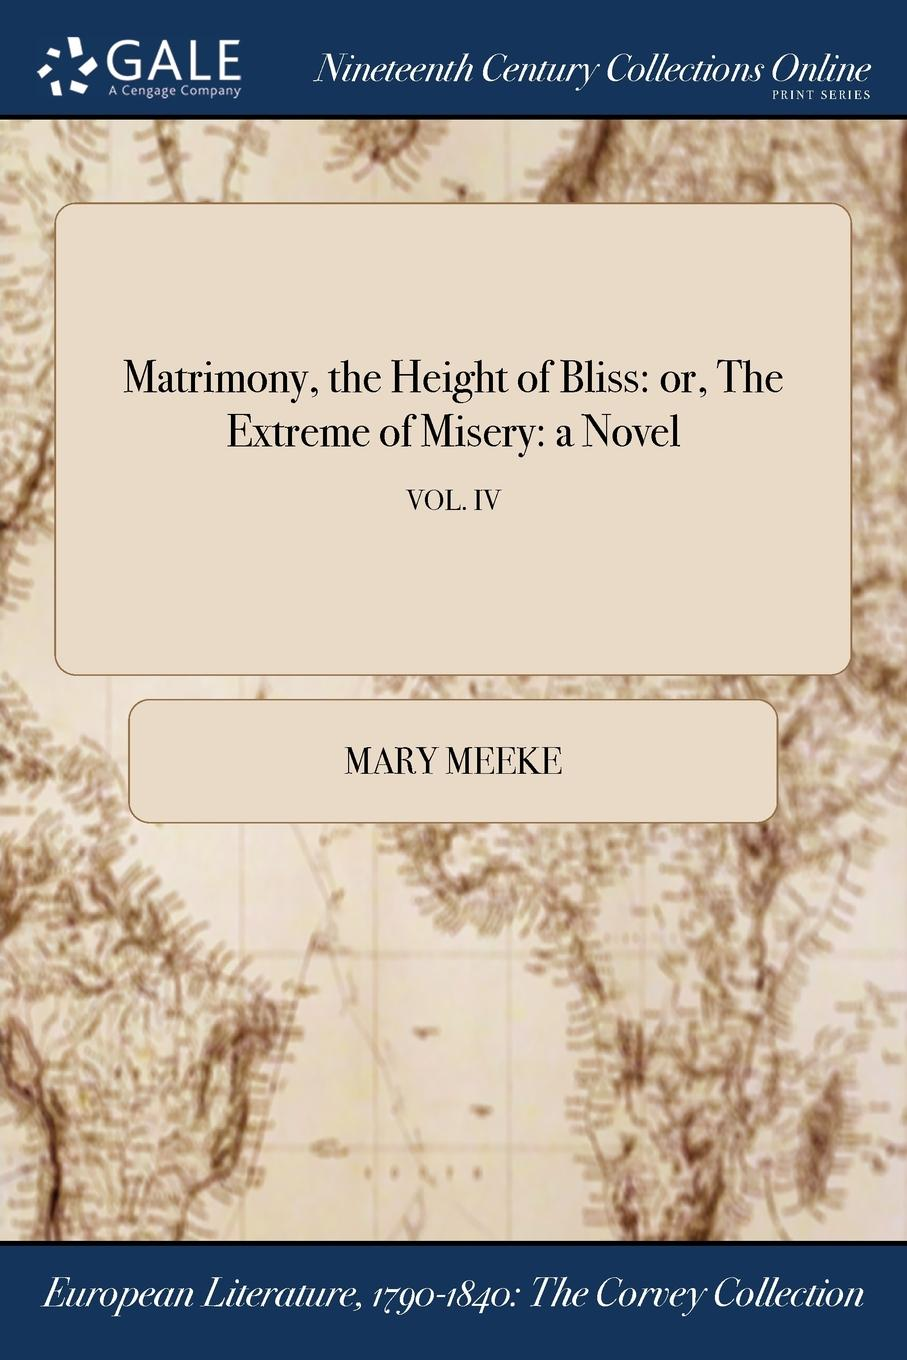 Mary Meeke Matrimony, the Height of Bliss. or, The Extreme of Misery: a Novel; VOL. IV